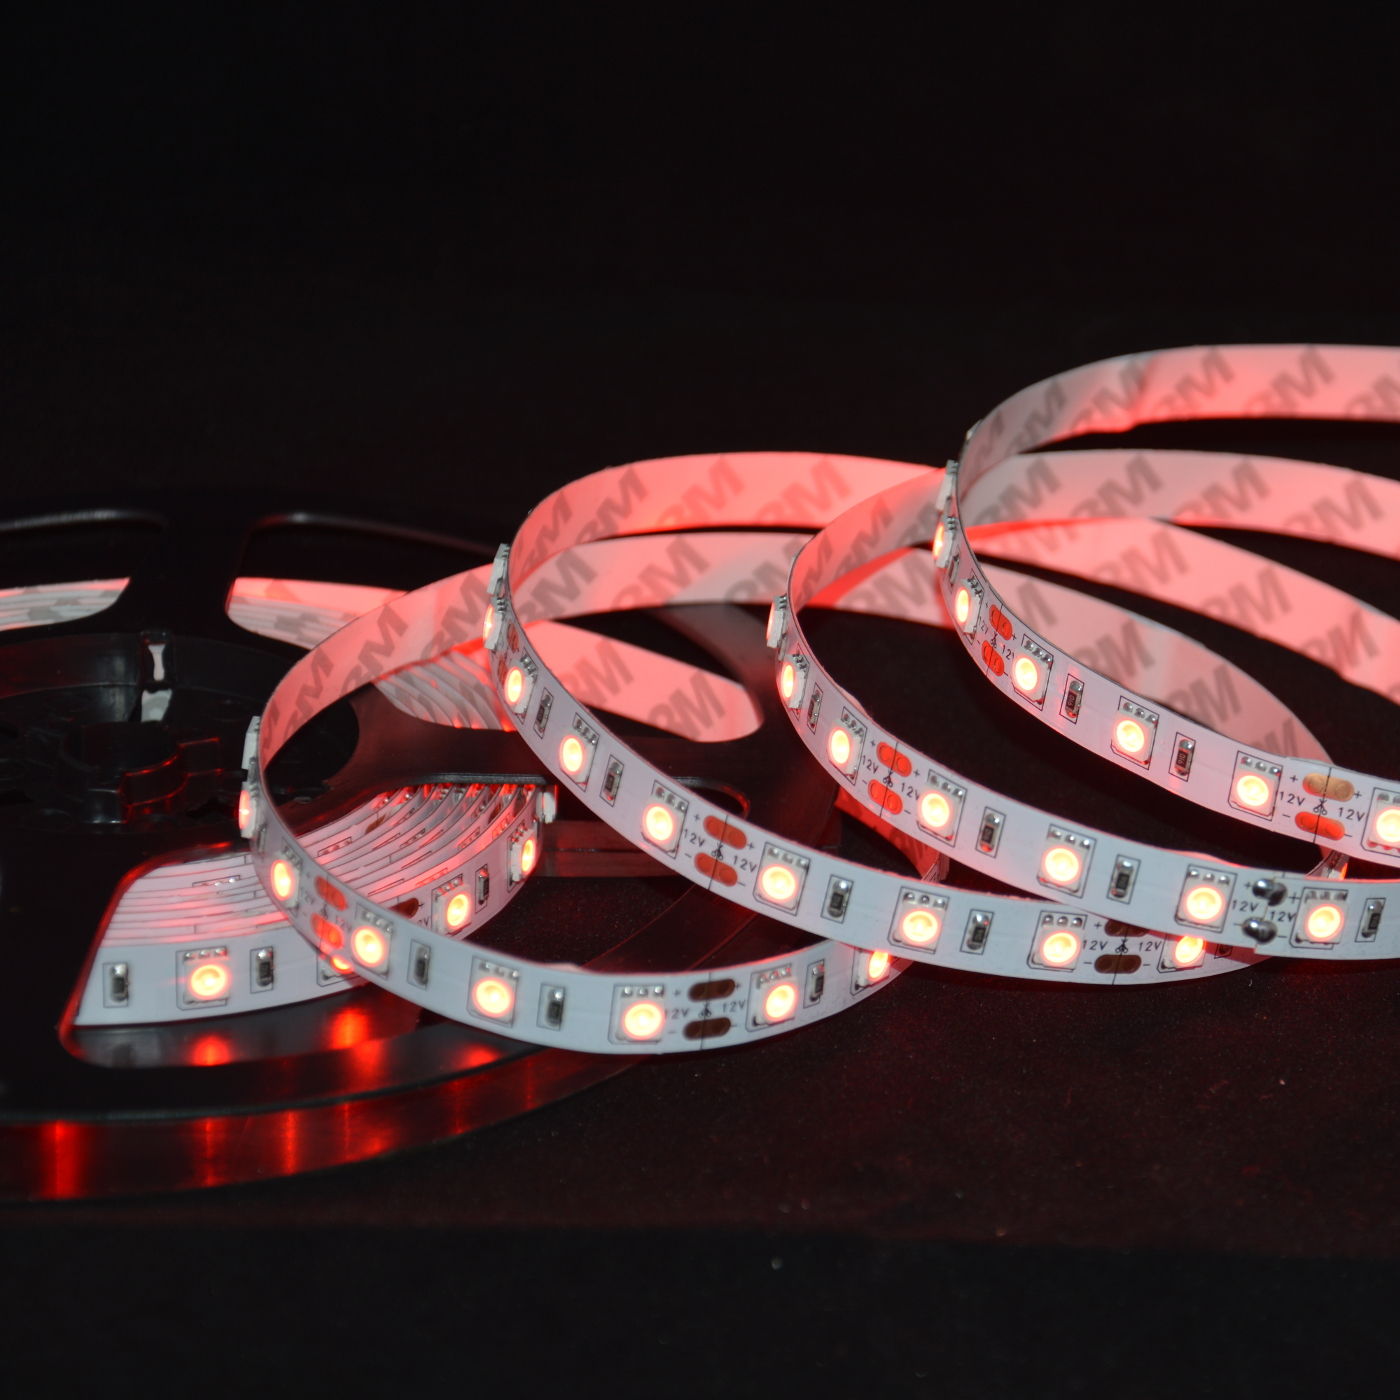 High Brightness SMD 5050 ABI 300 LED Strip Light 5M 12V Red